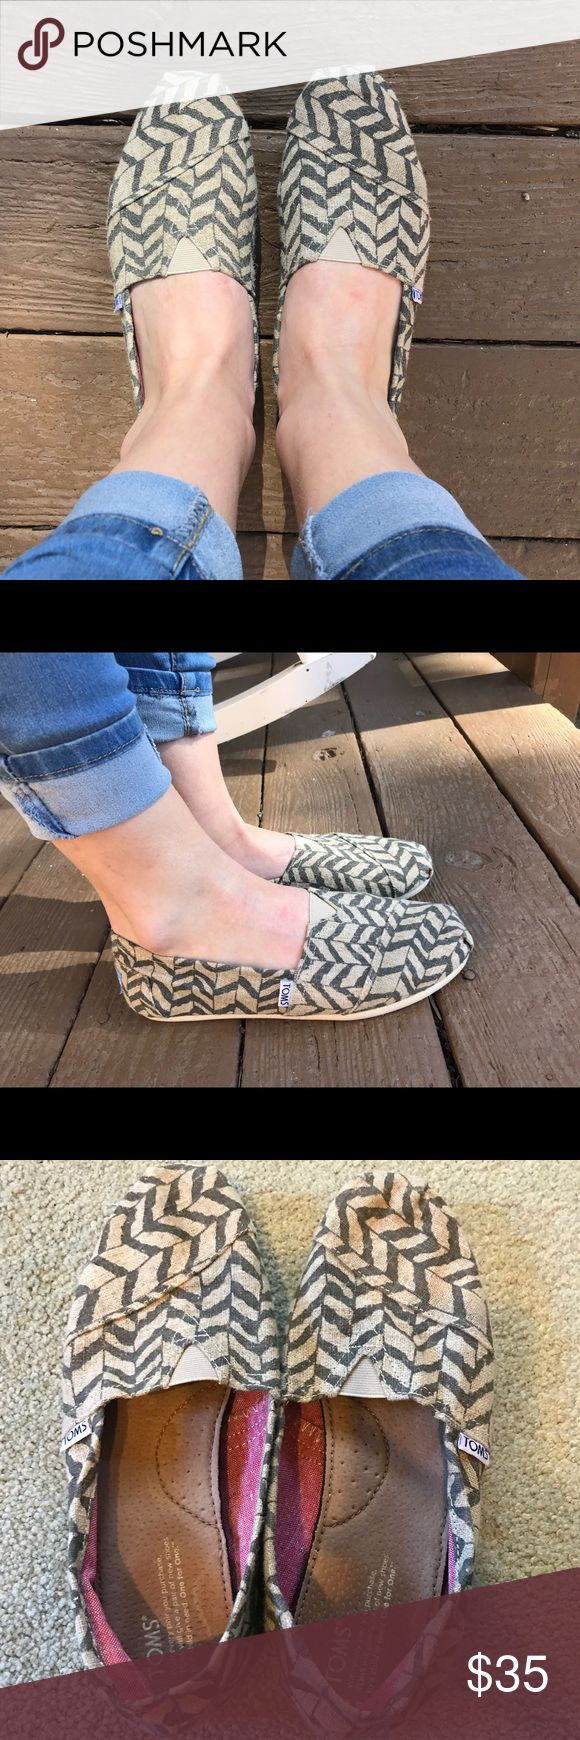 Burlap Chevron Tom's Like new! Only worn a couple times! Super comfortable and matches a lot of outfits. Toms Shoes